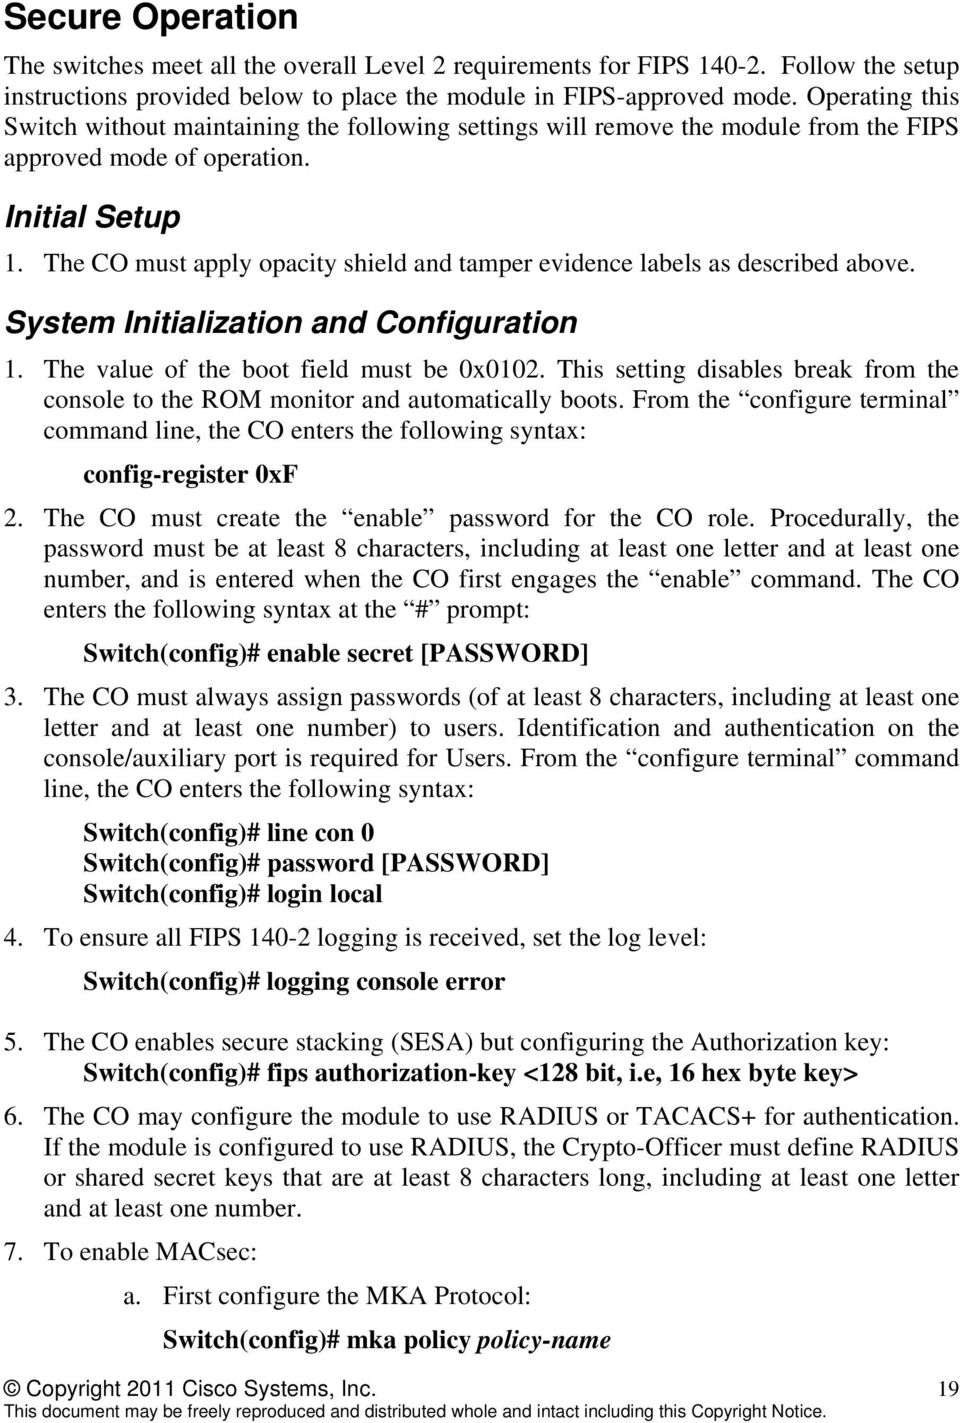 The CO must apply opacity shield and tamper evidence labels as described above. System Initialization and Configuration 1. The value of the boot field must be 0x0102.